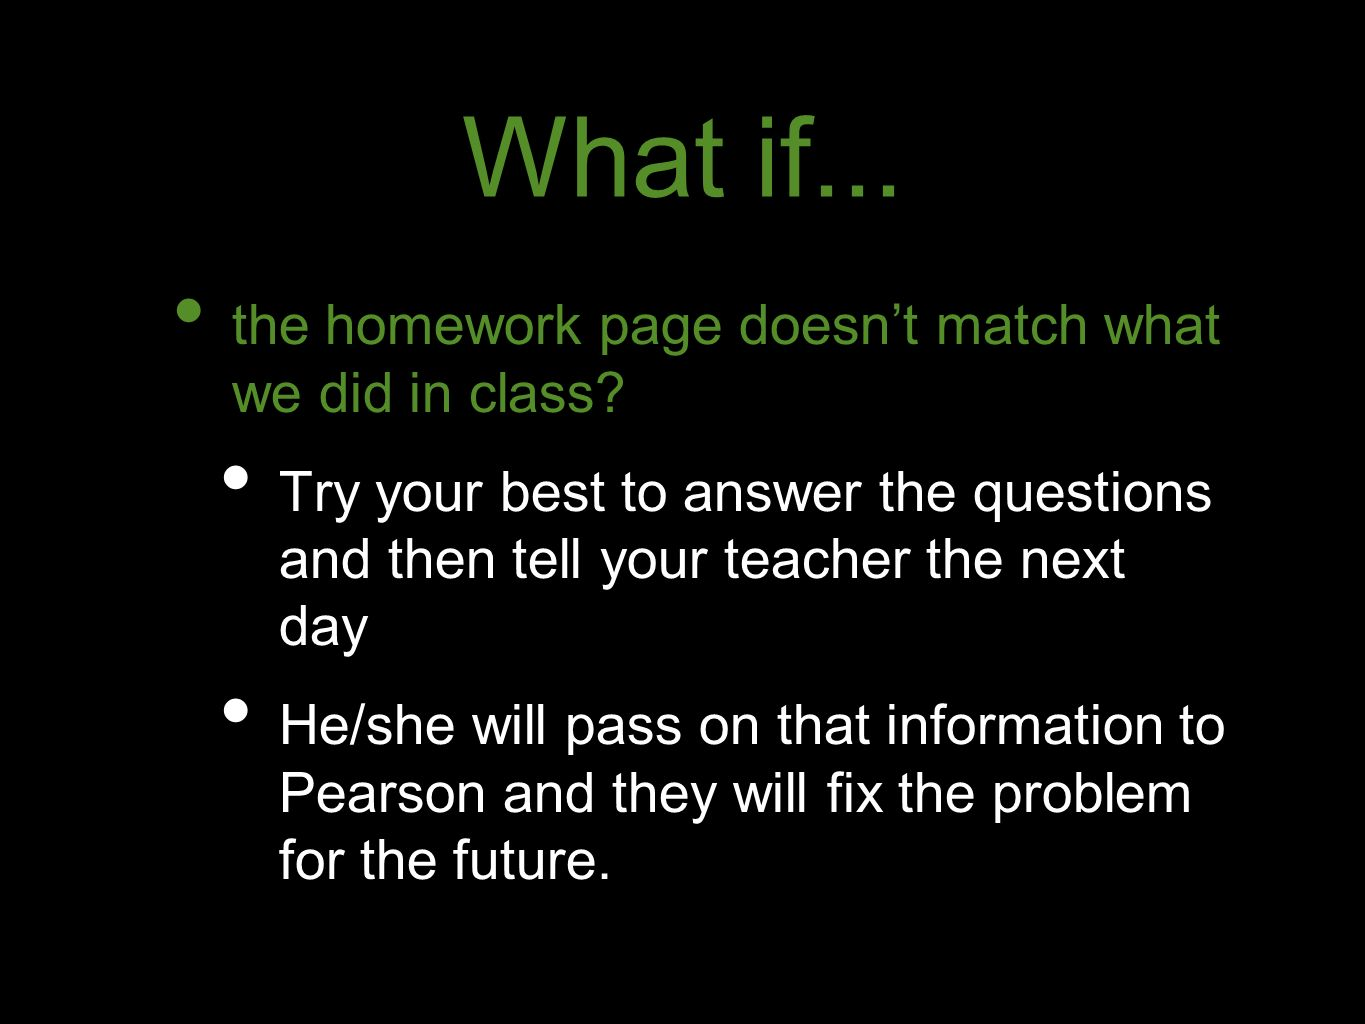 What if... the homework page doesn't match what we did in class